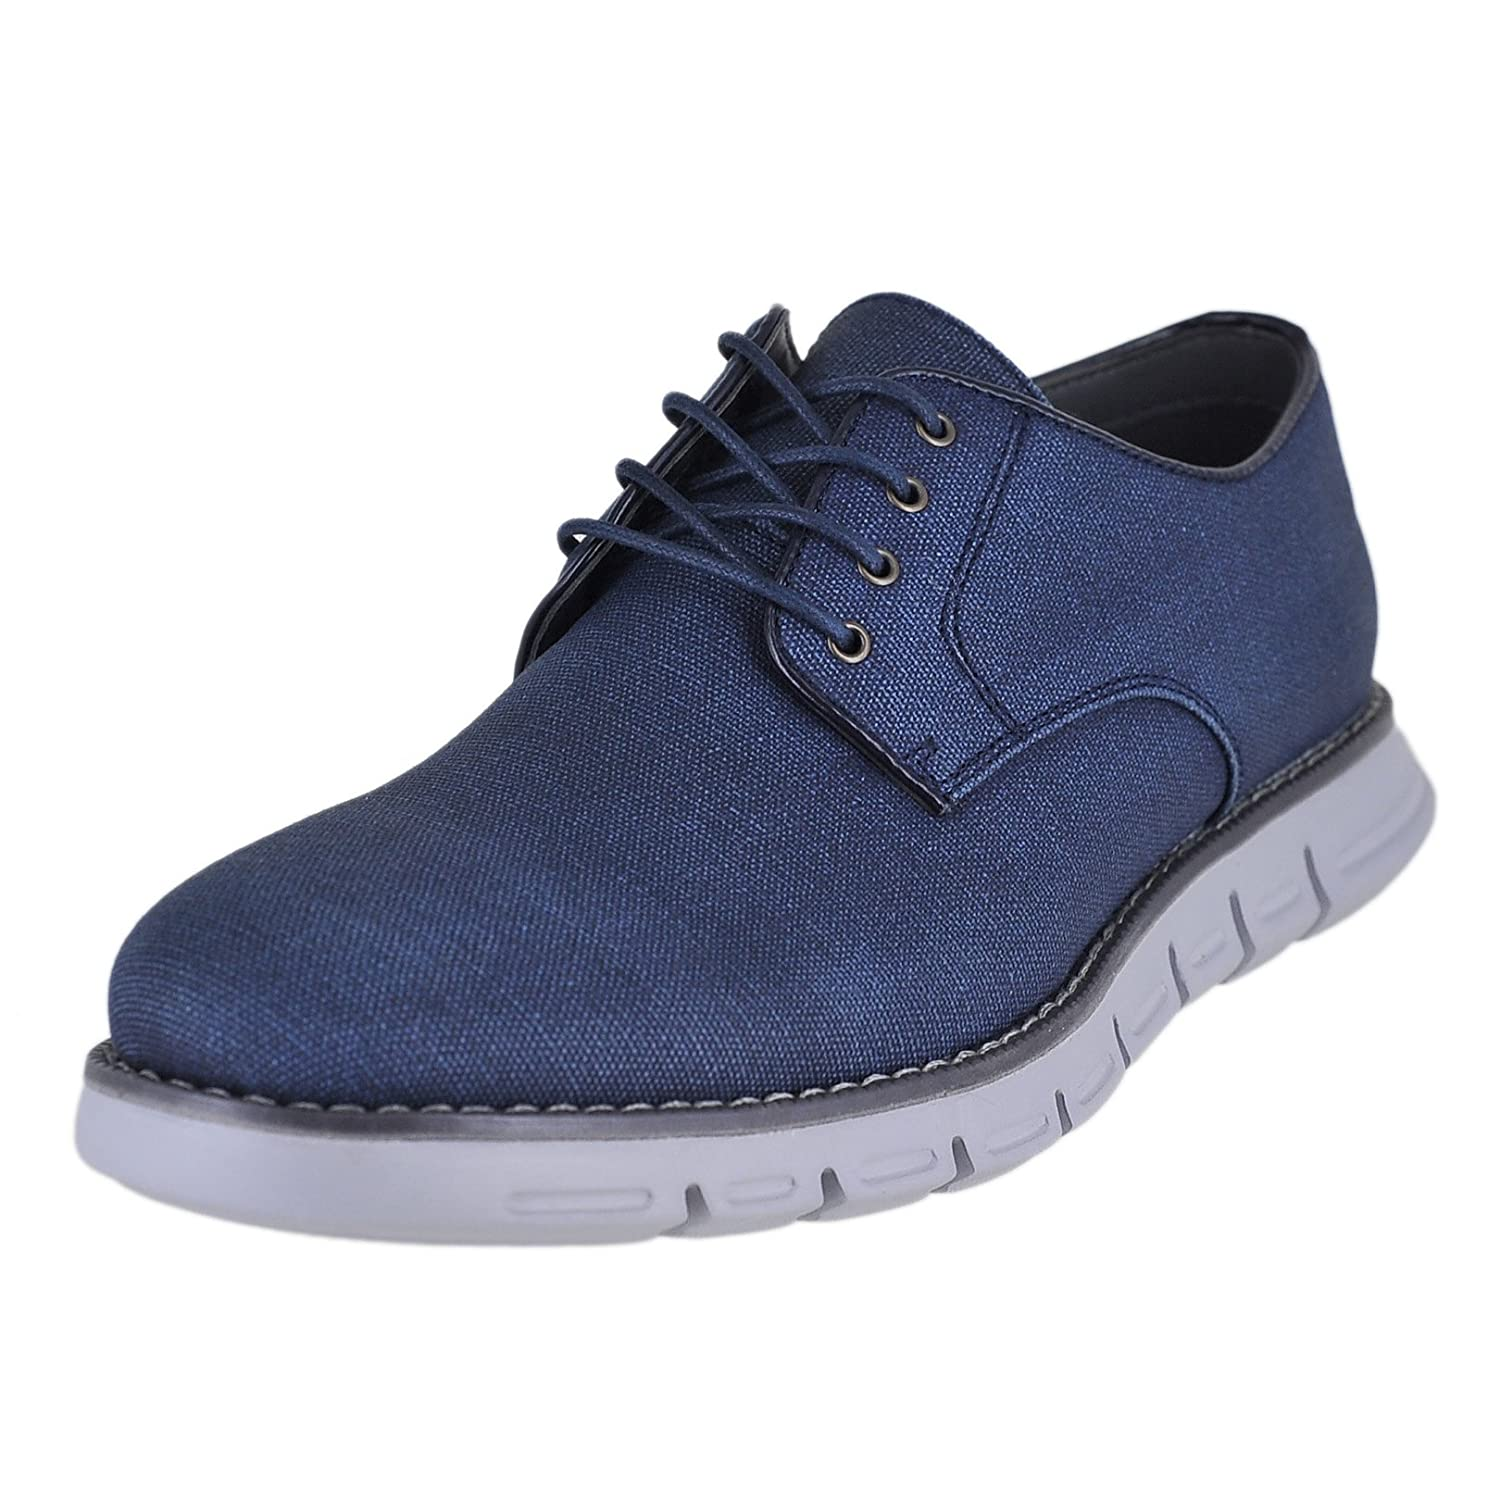 GBX Hurst Men's Classic Plain Toe Casual Lace up Oxford Shoes